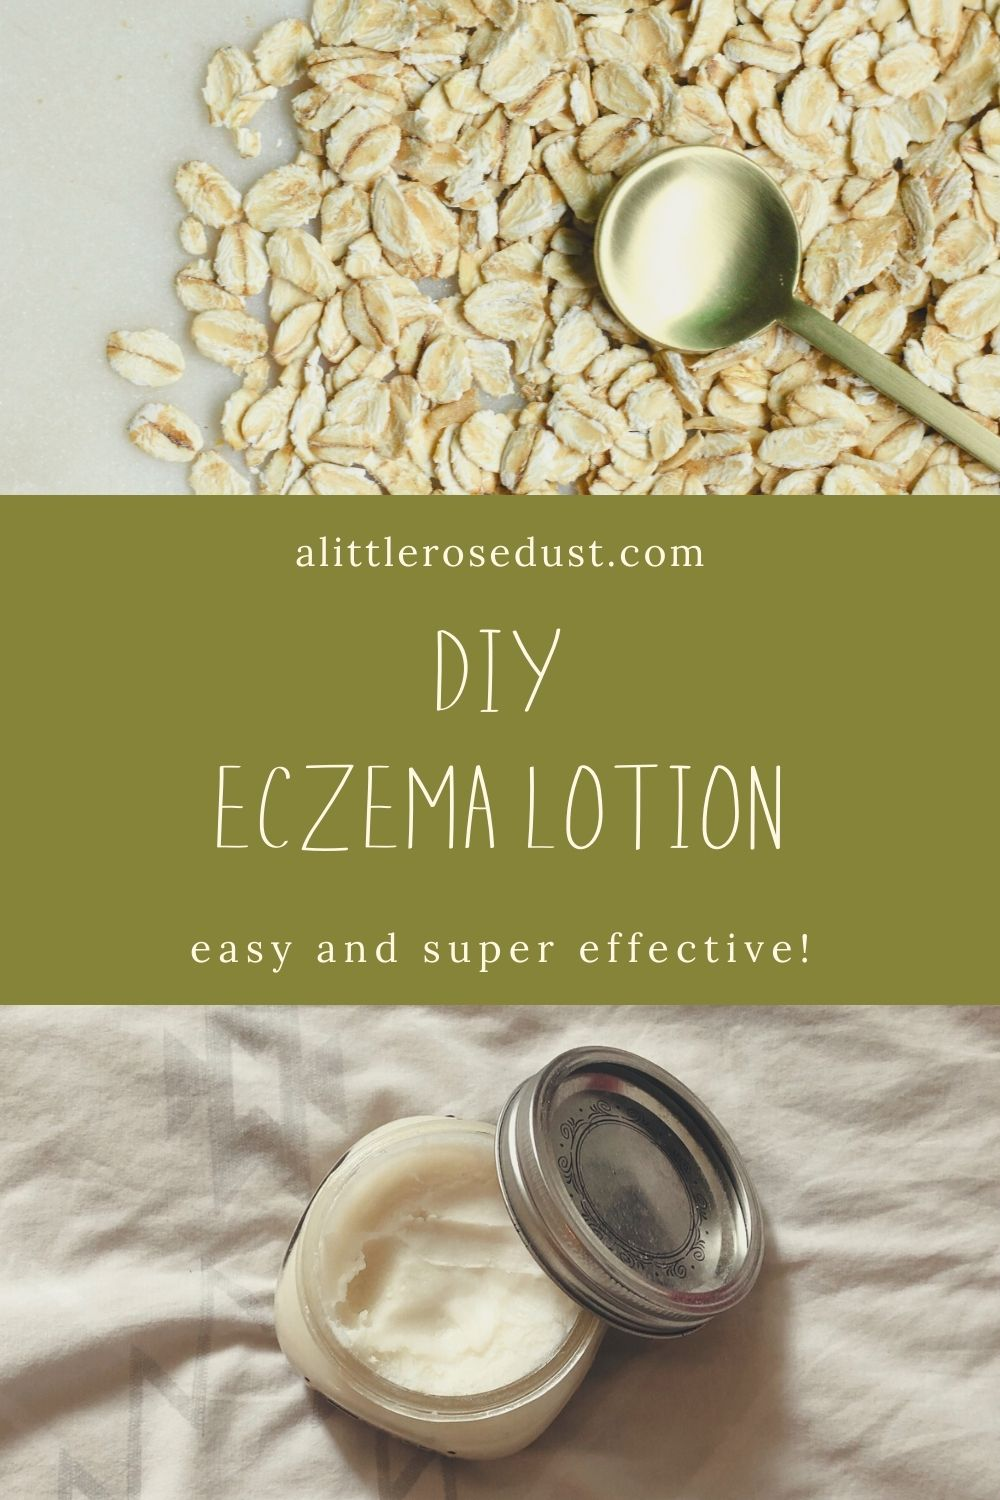 diy eczema lotion